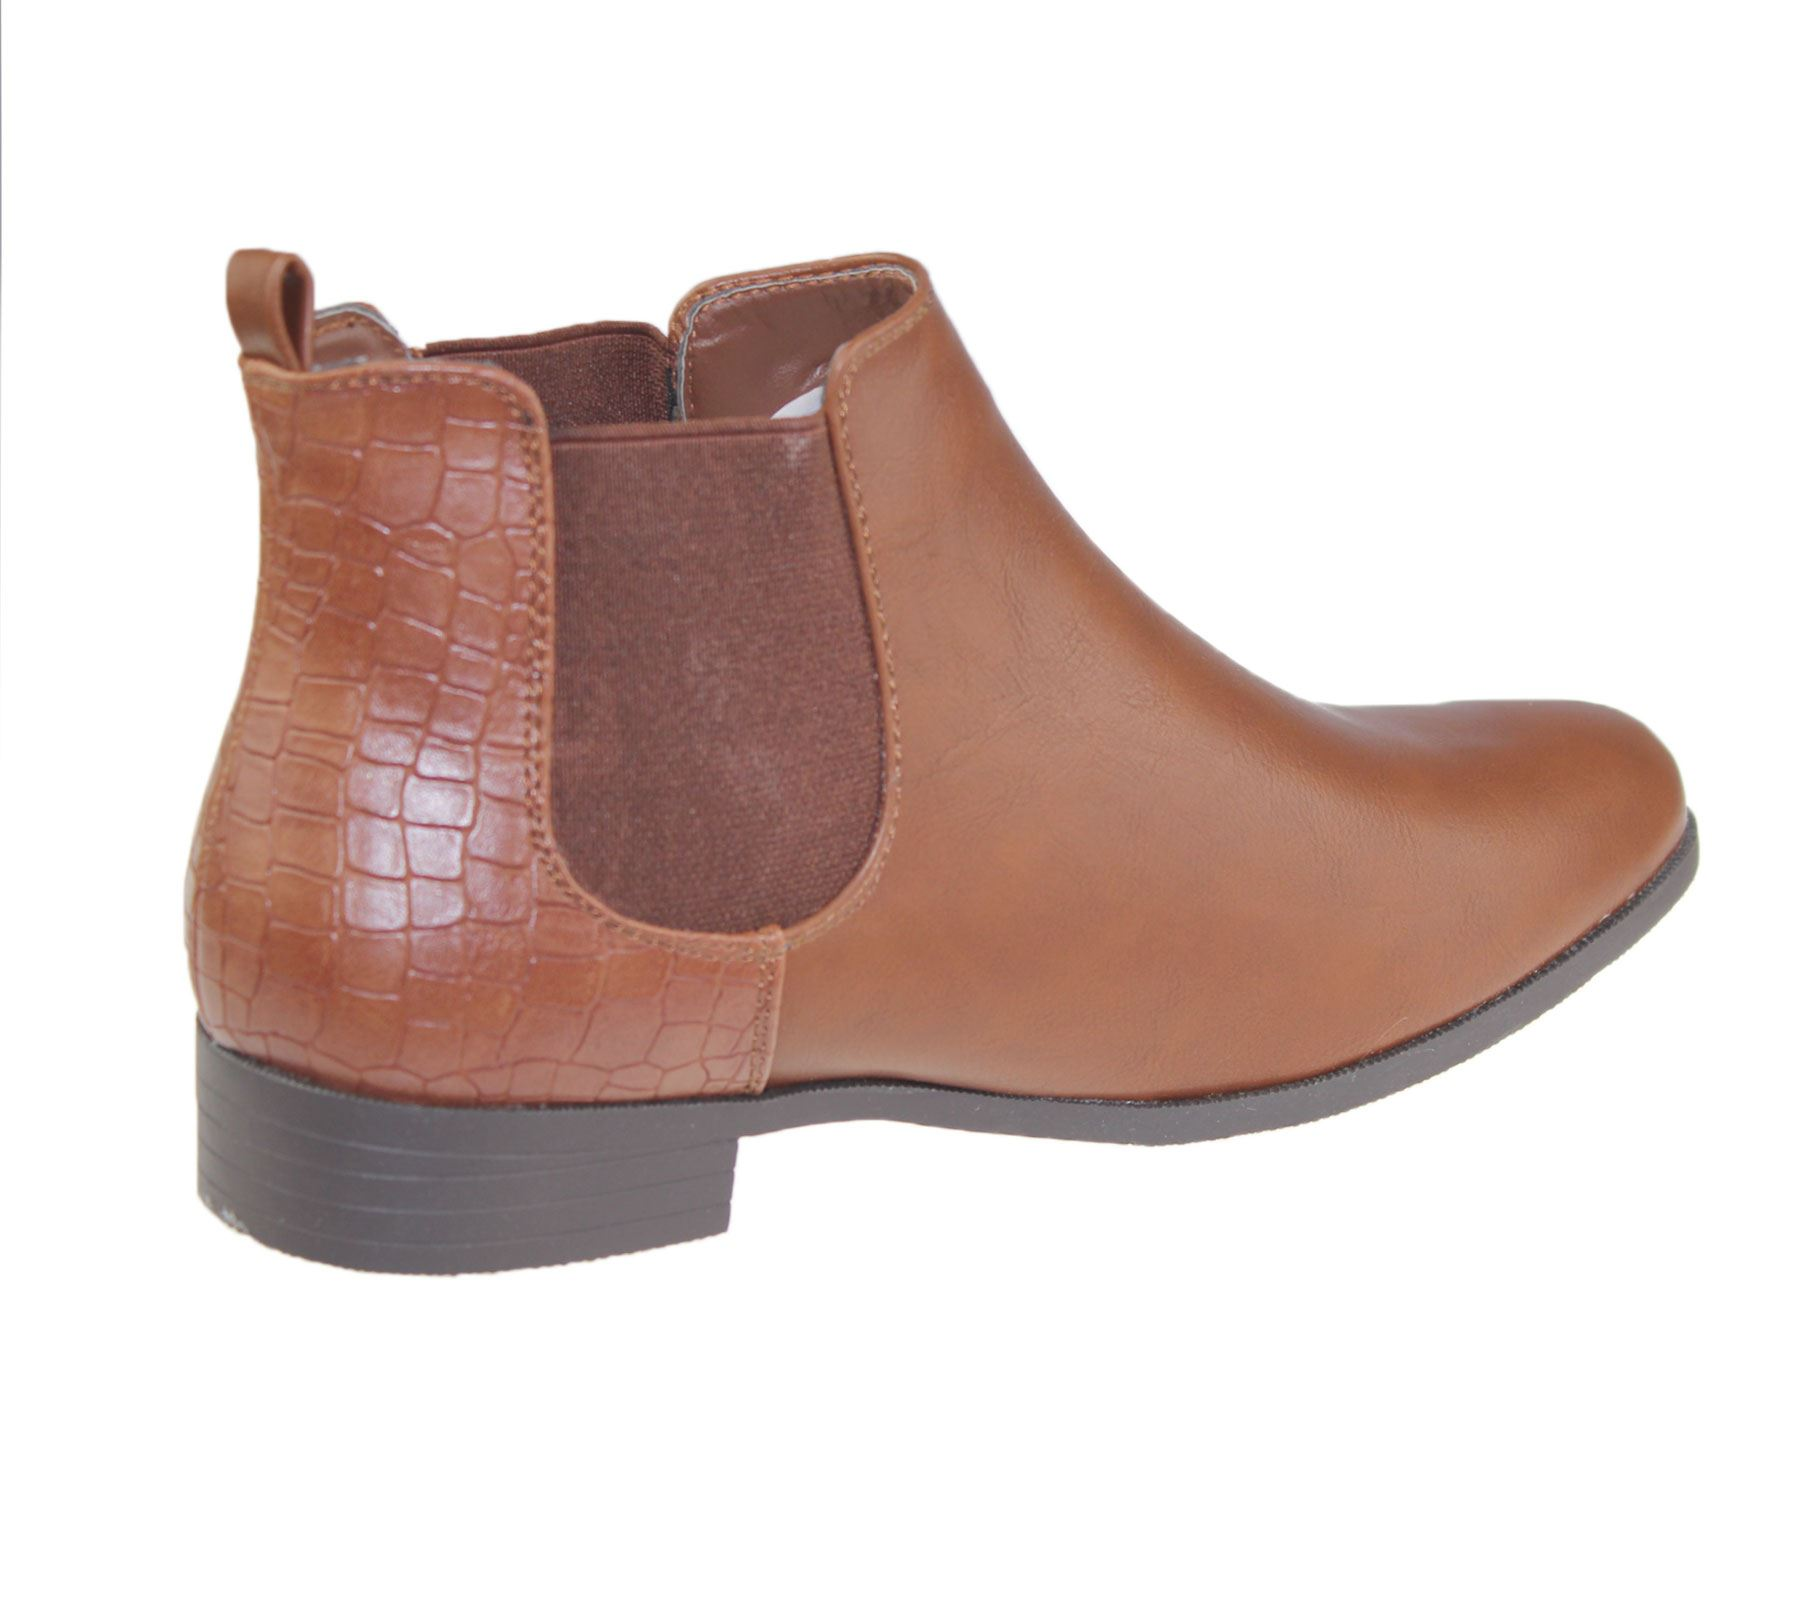 Womens-Ankle-Boots-Ladies-Chelsea-High-Top-Casual-Riding-Elasticated-Shoes-Size thumbnail 5